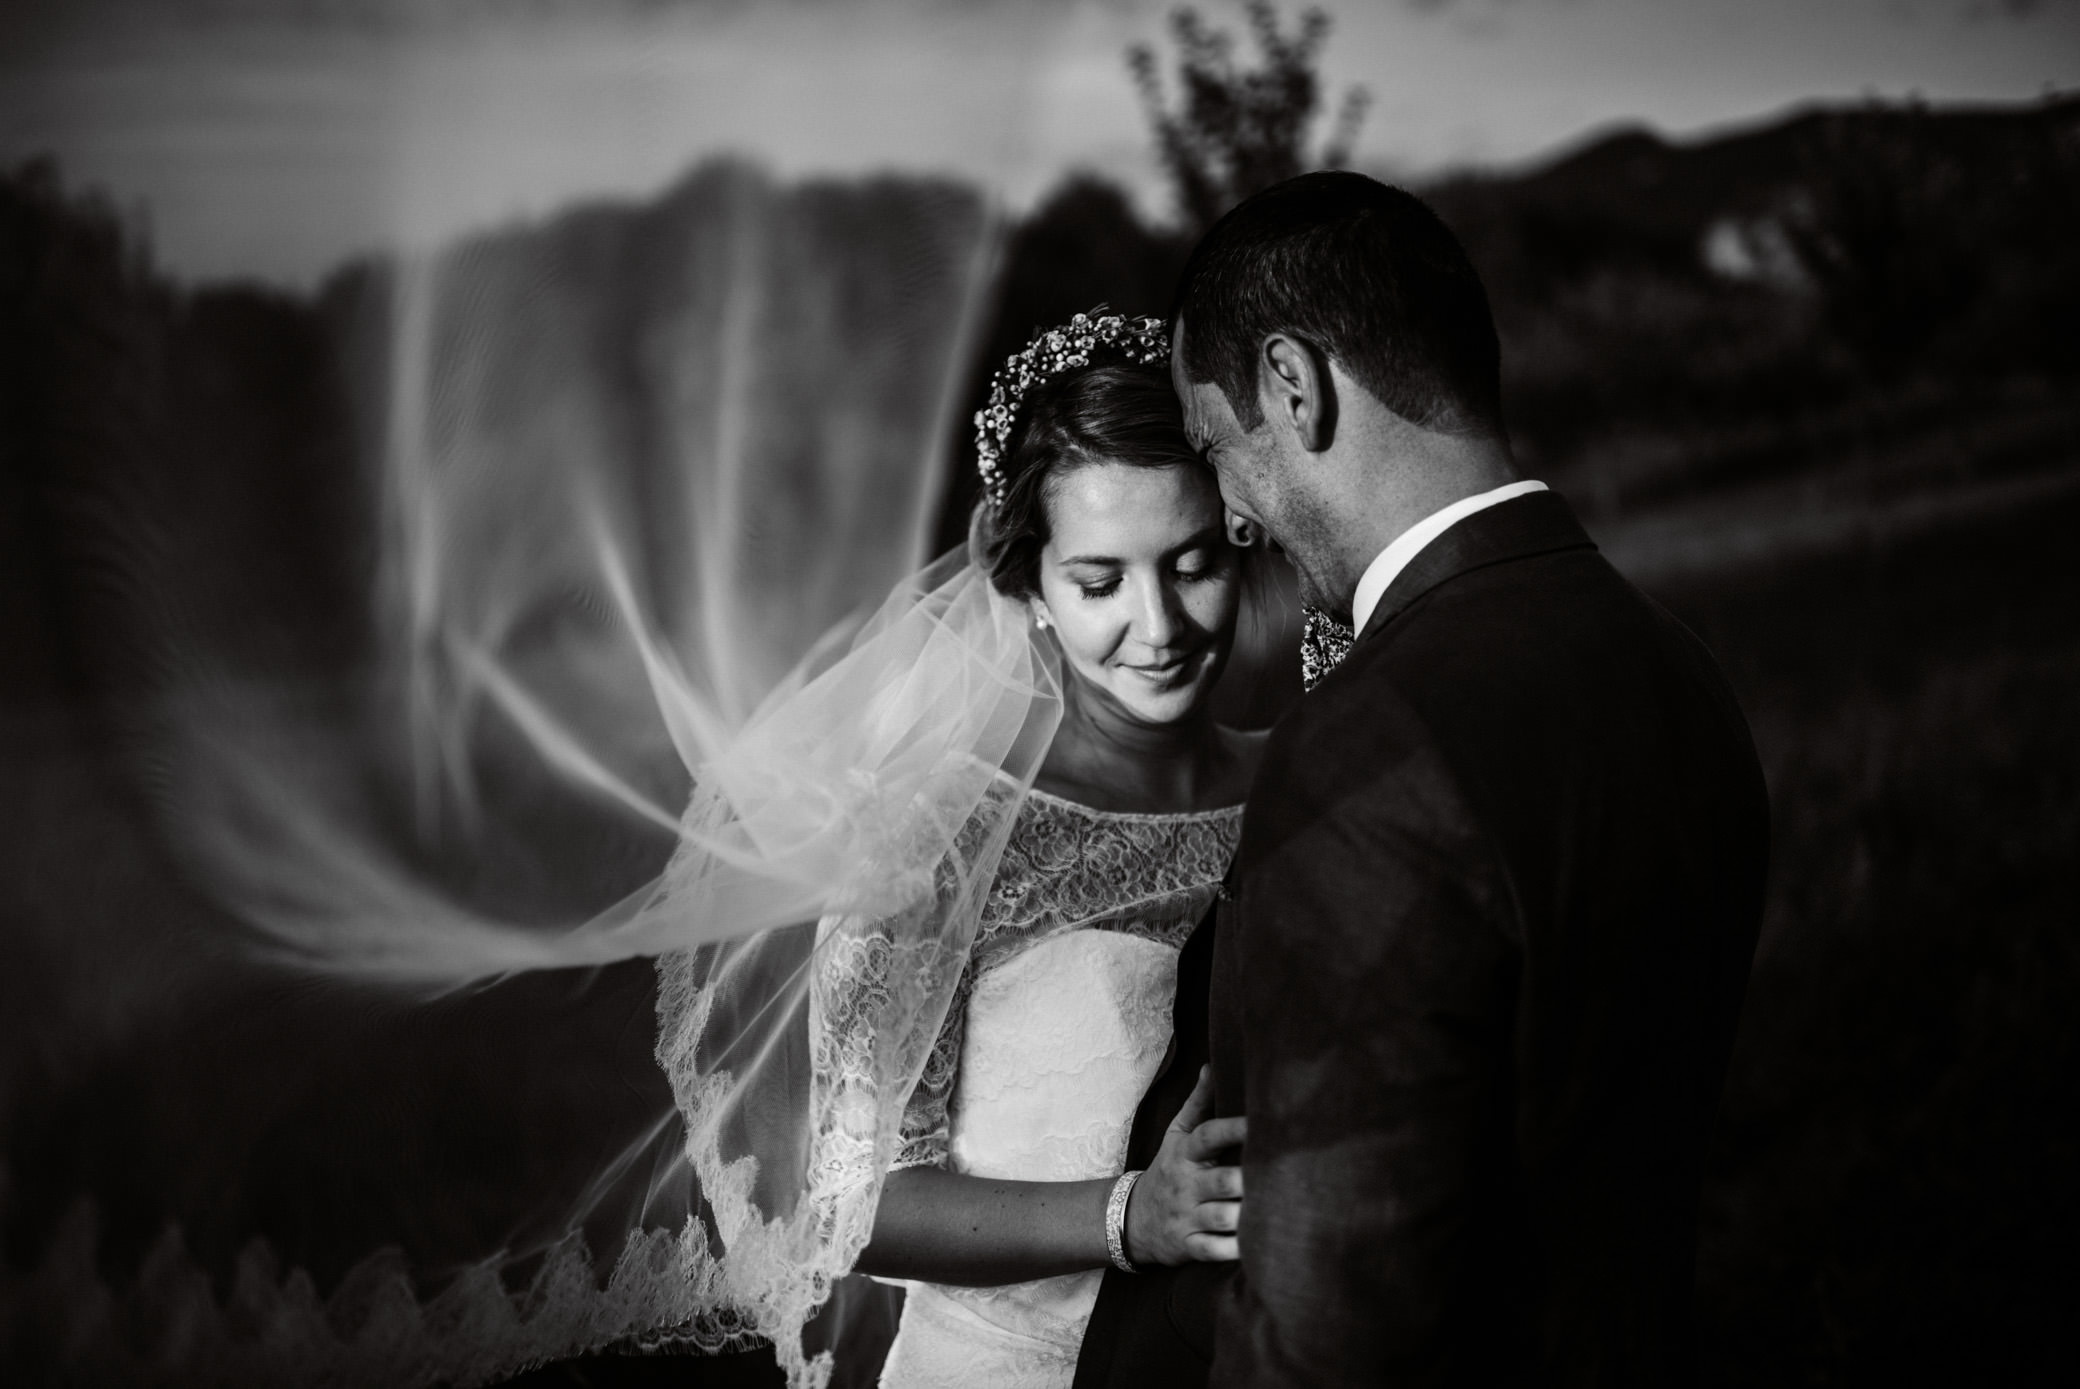 photographe-mariage-grenoble-isere-couvent-des-carmes